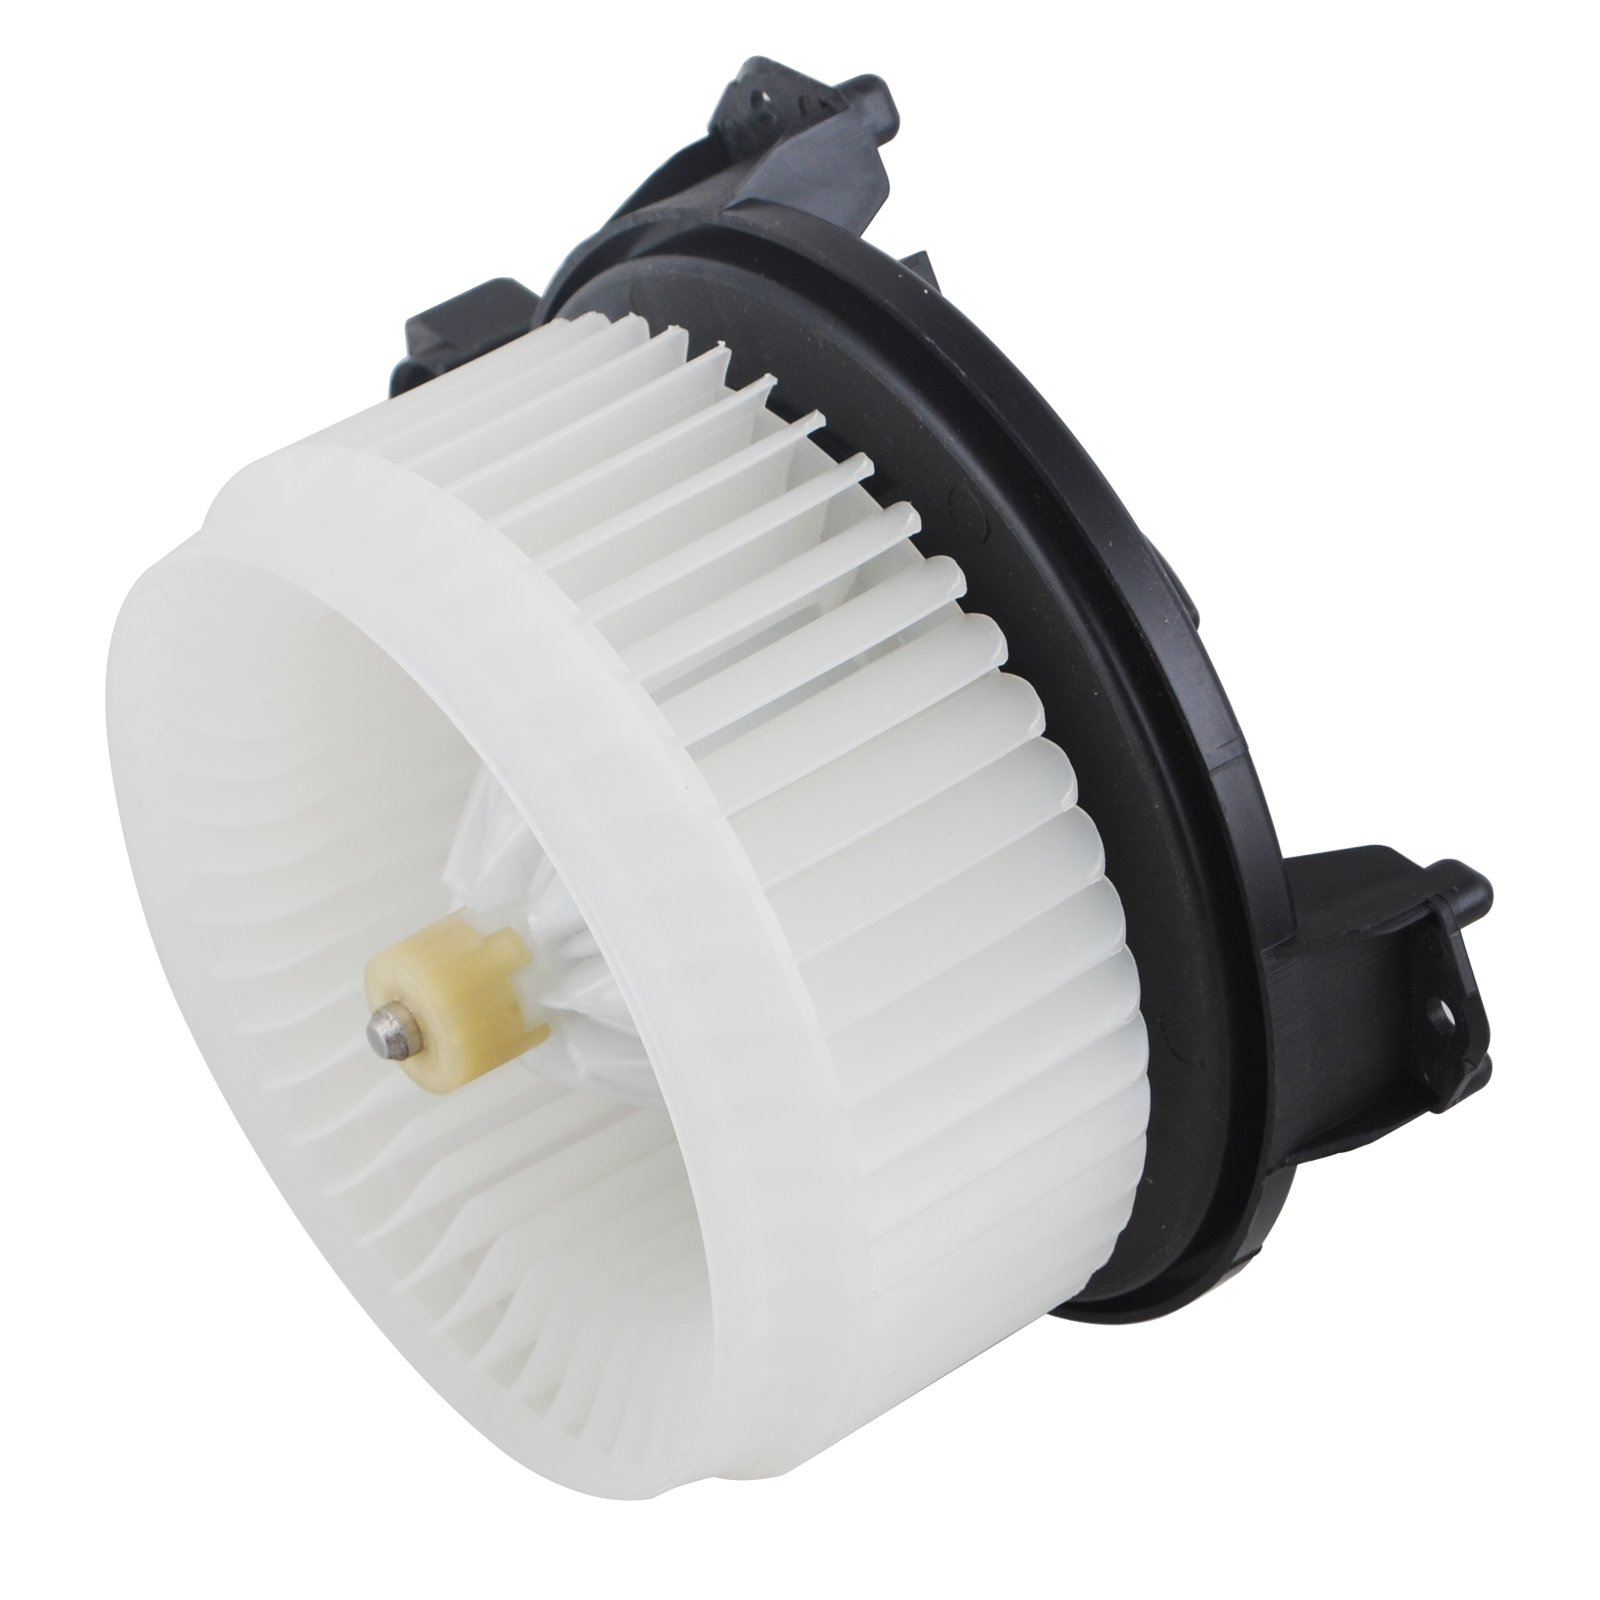 Fan Blower Motor A/C-Heater For Toyota Hiace Van 200 Series KDH TRH 2005-ON image